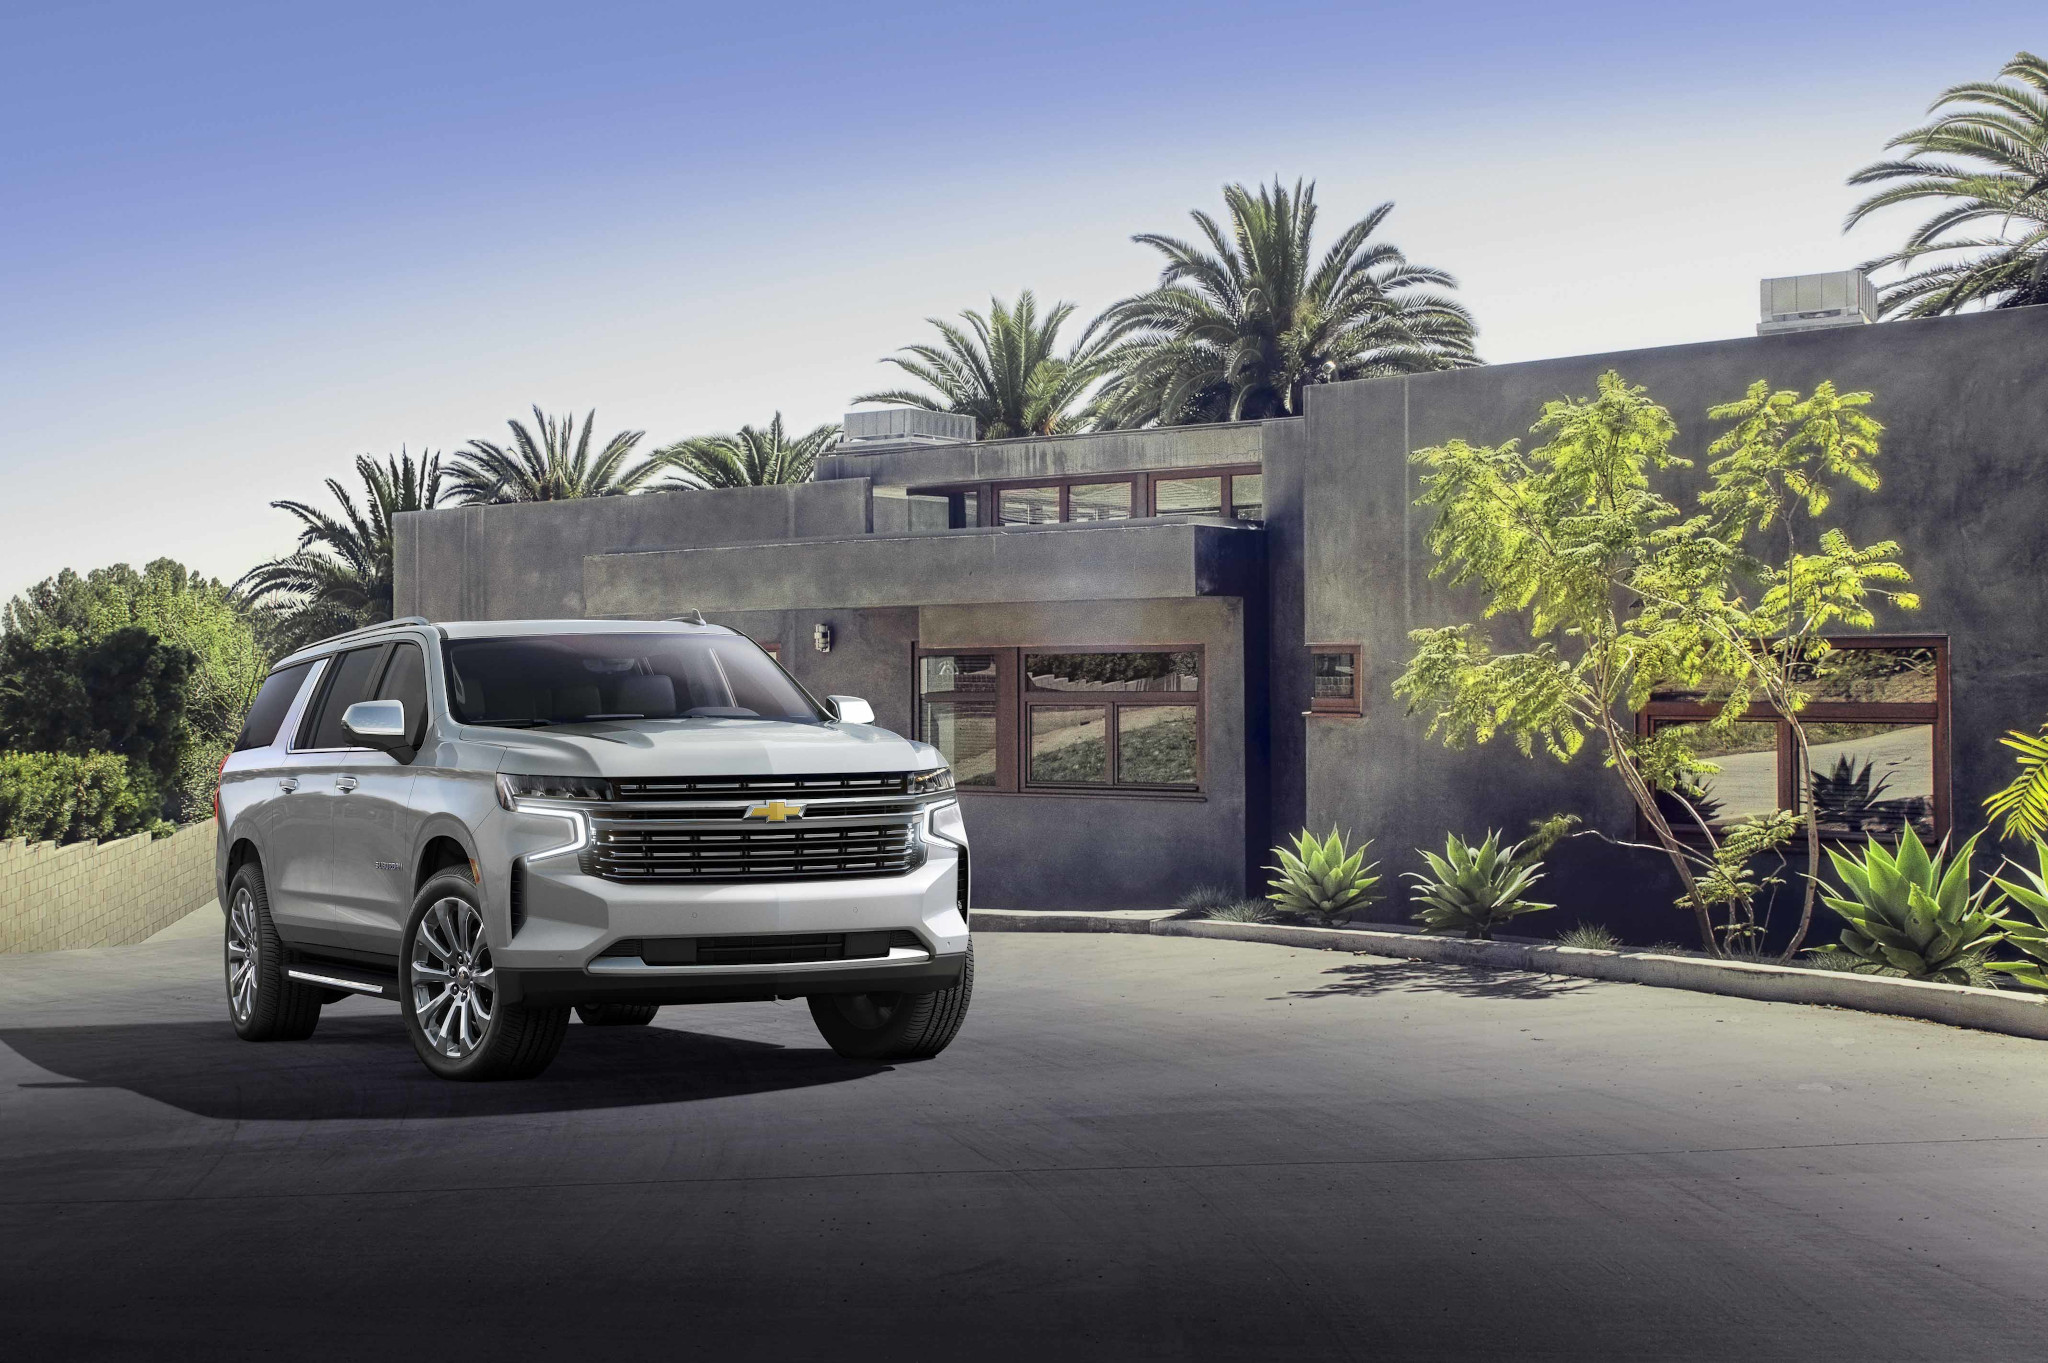 2021 Chevrolet Suburban and Tahoe: Big Is Back